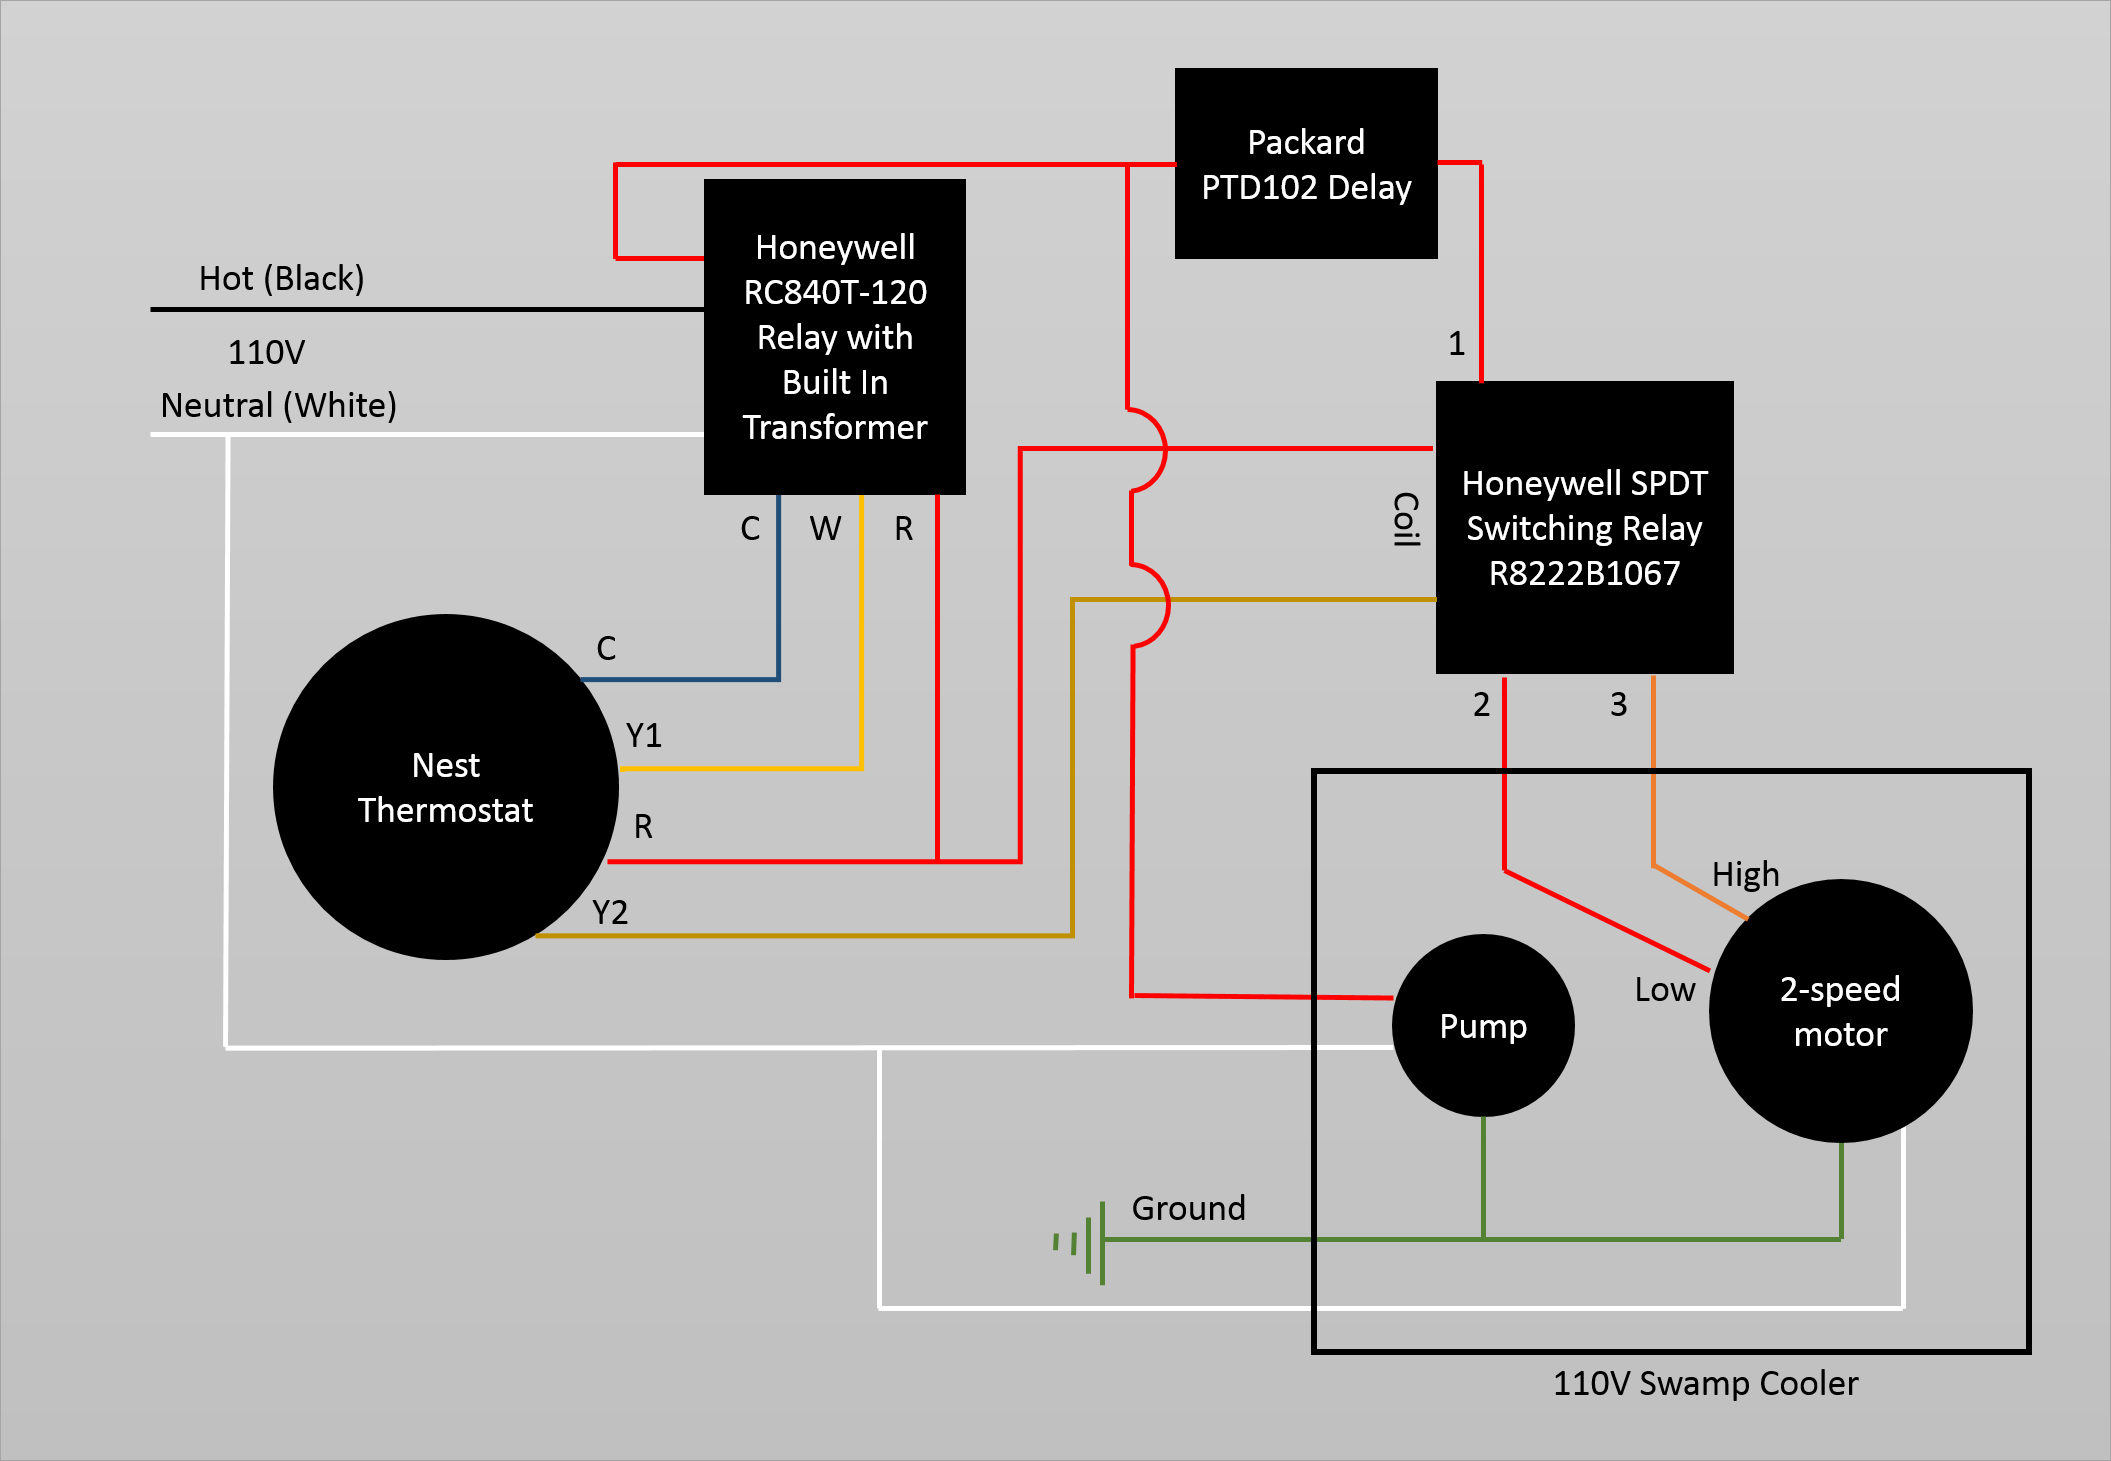 Wiring - Controlling 110V Swamp Cooler Using Nest Thermostat - Home - Nest Wiring Diagram Compatibility